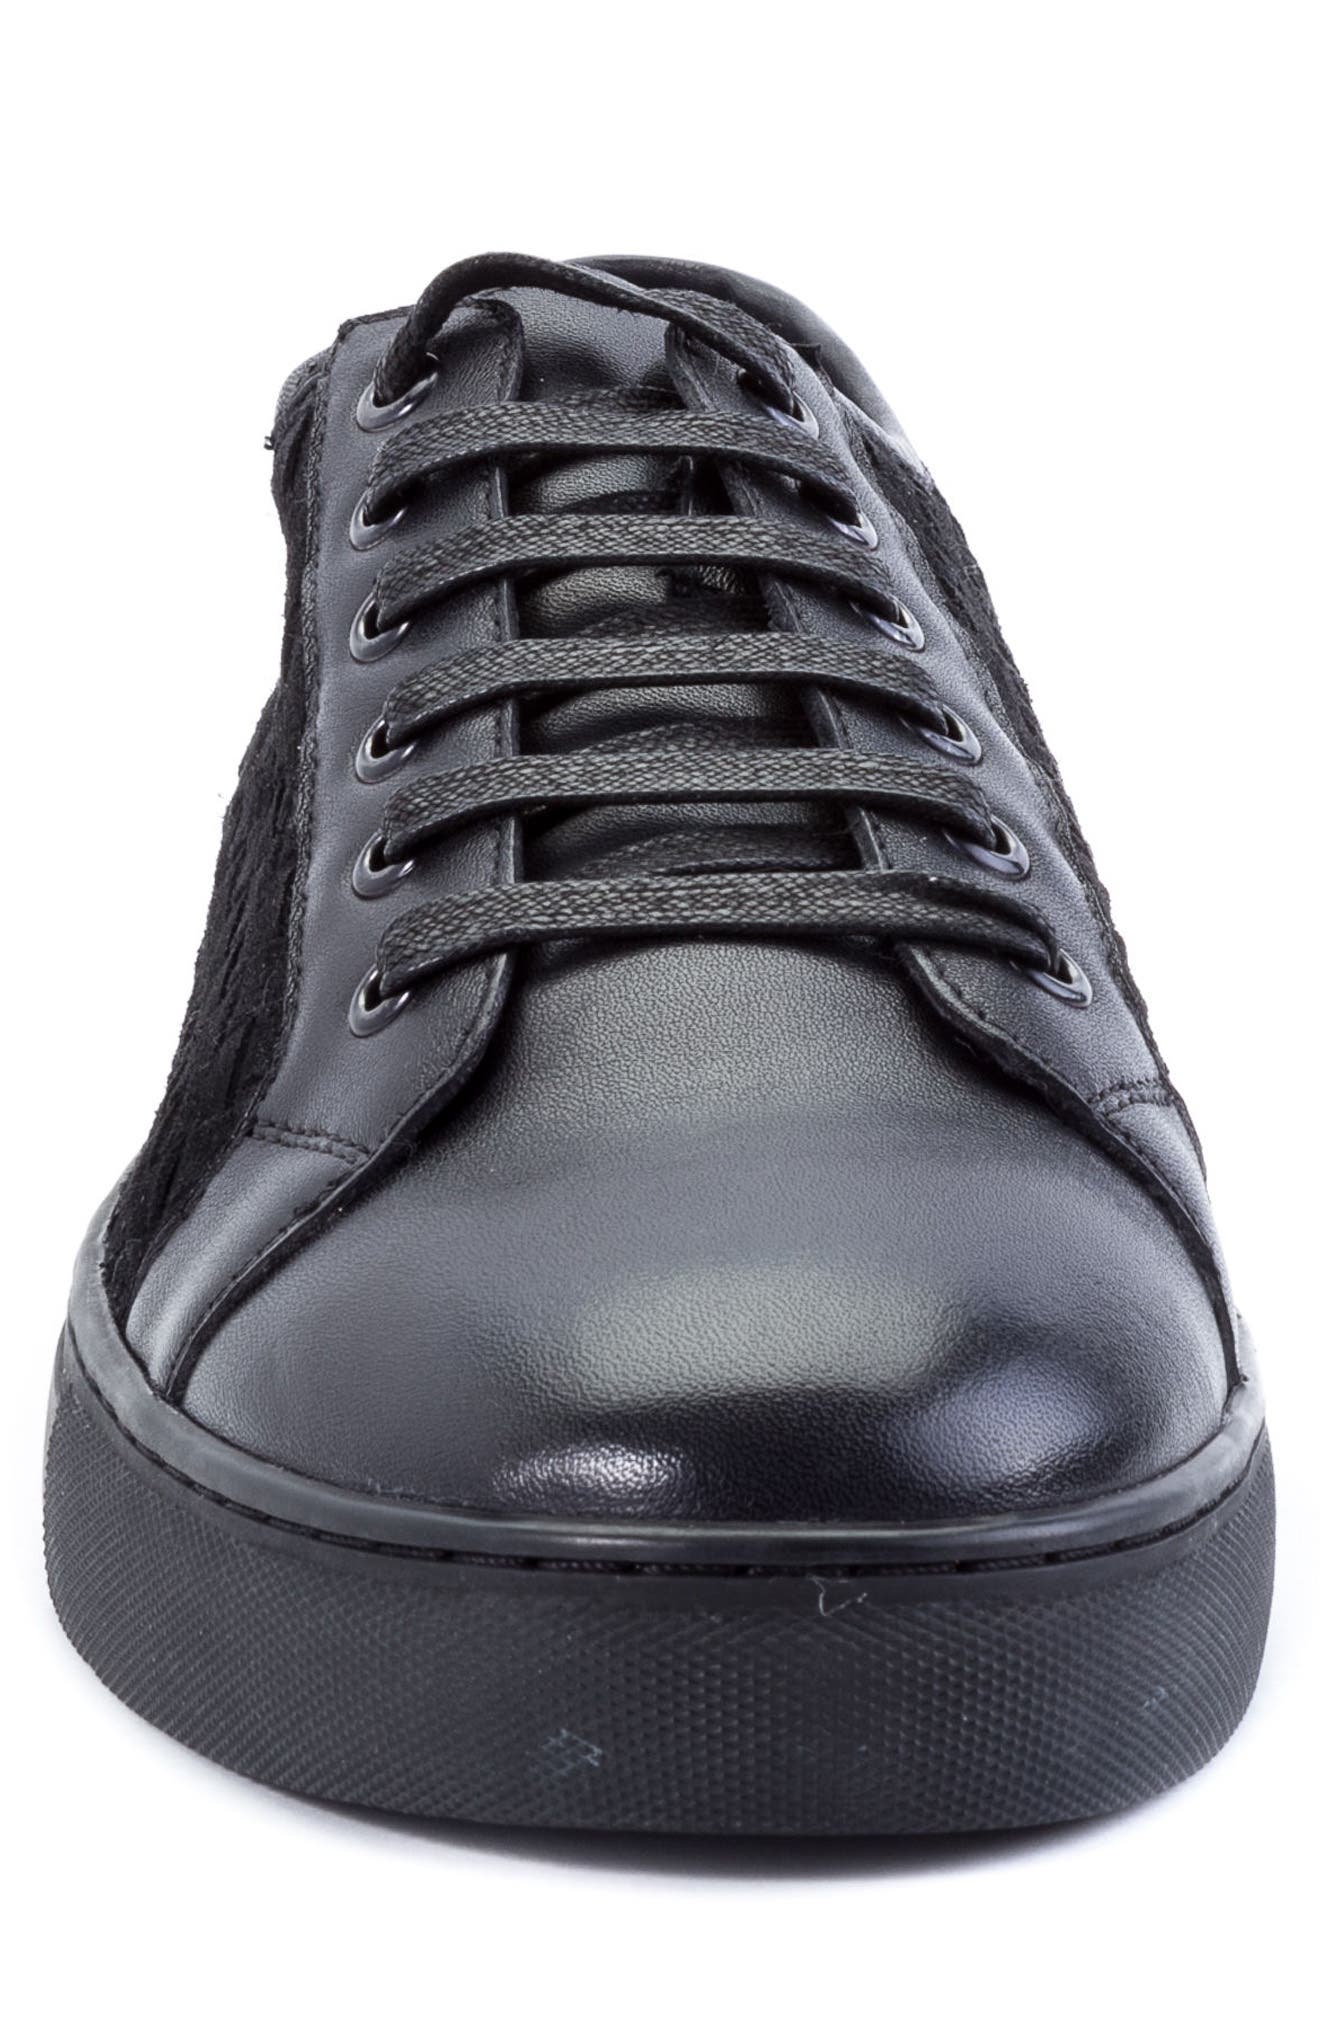 Player Woven Low Top Sneaker,                             Alternate thumbnail 4, color,                             BLACK LEATHER/ SUEDE